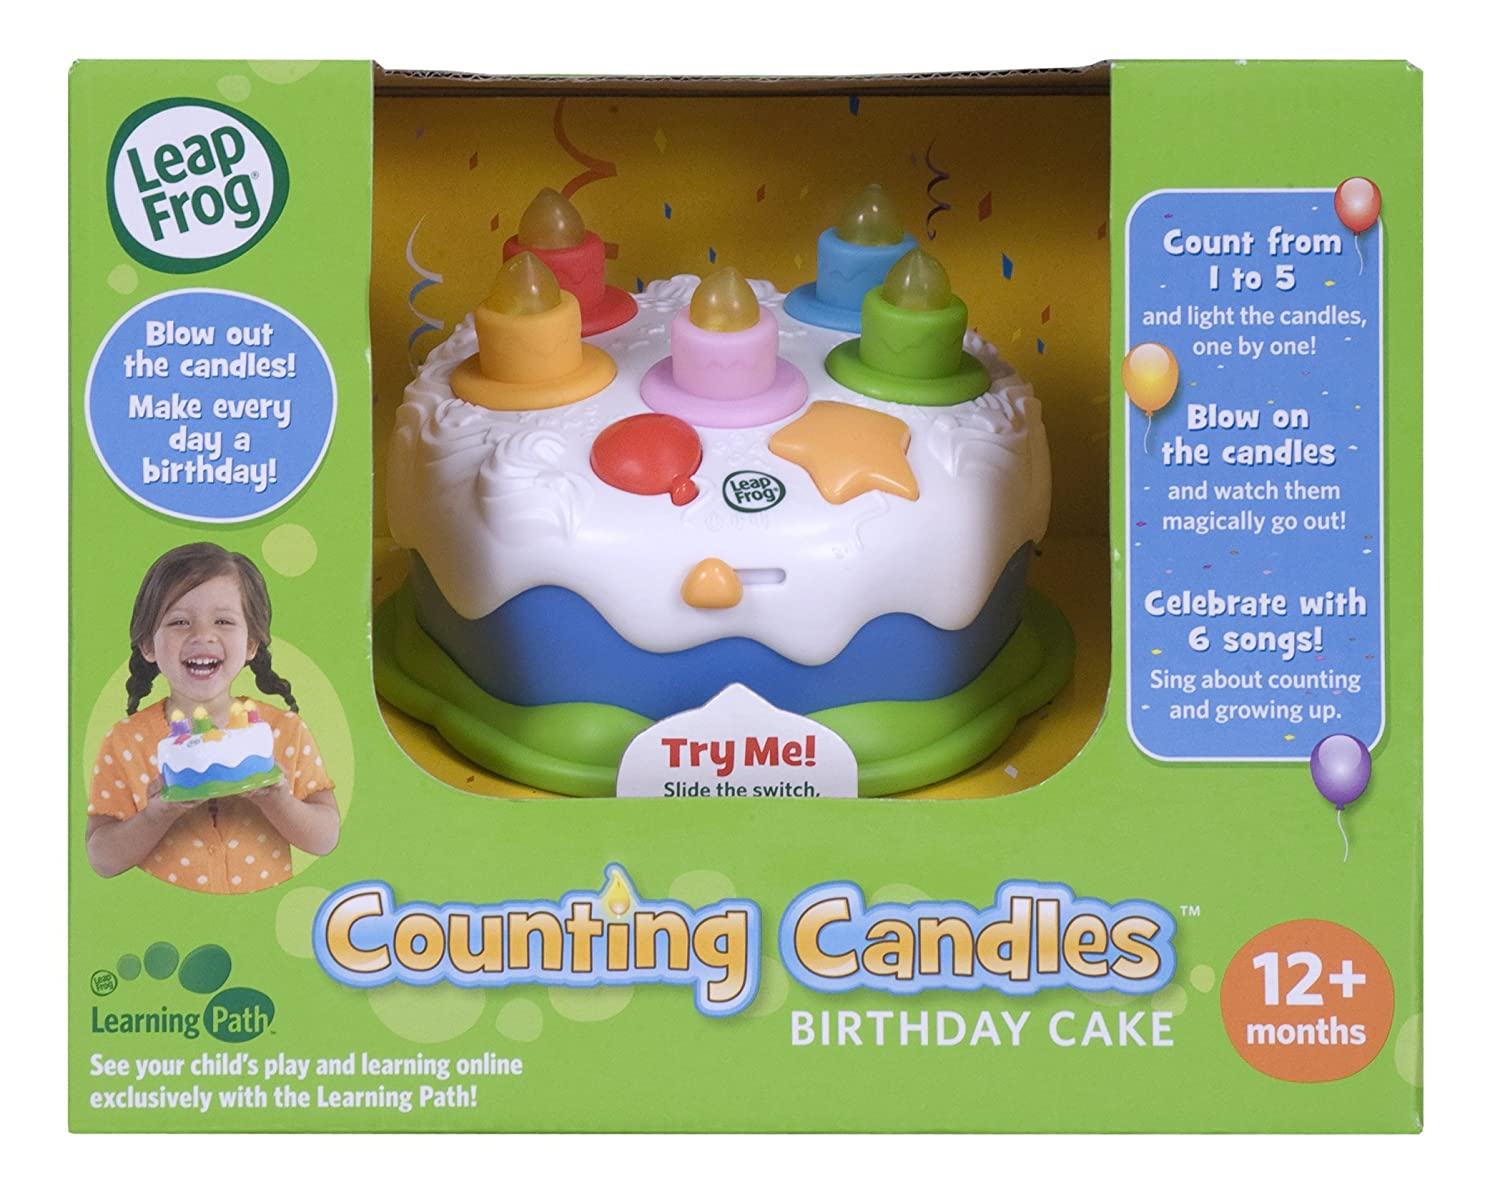 Leapfrog Counting Candles Birthday Cake Ebay